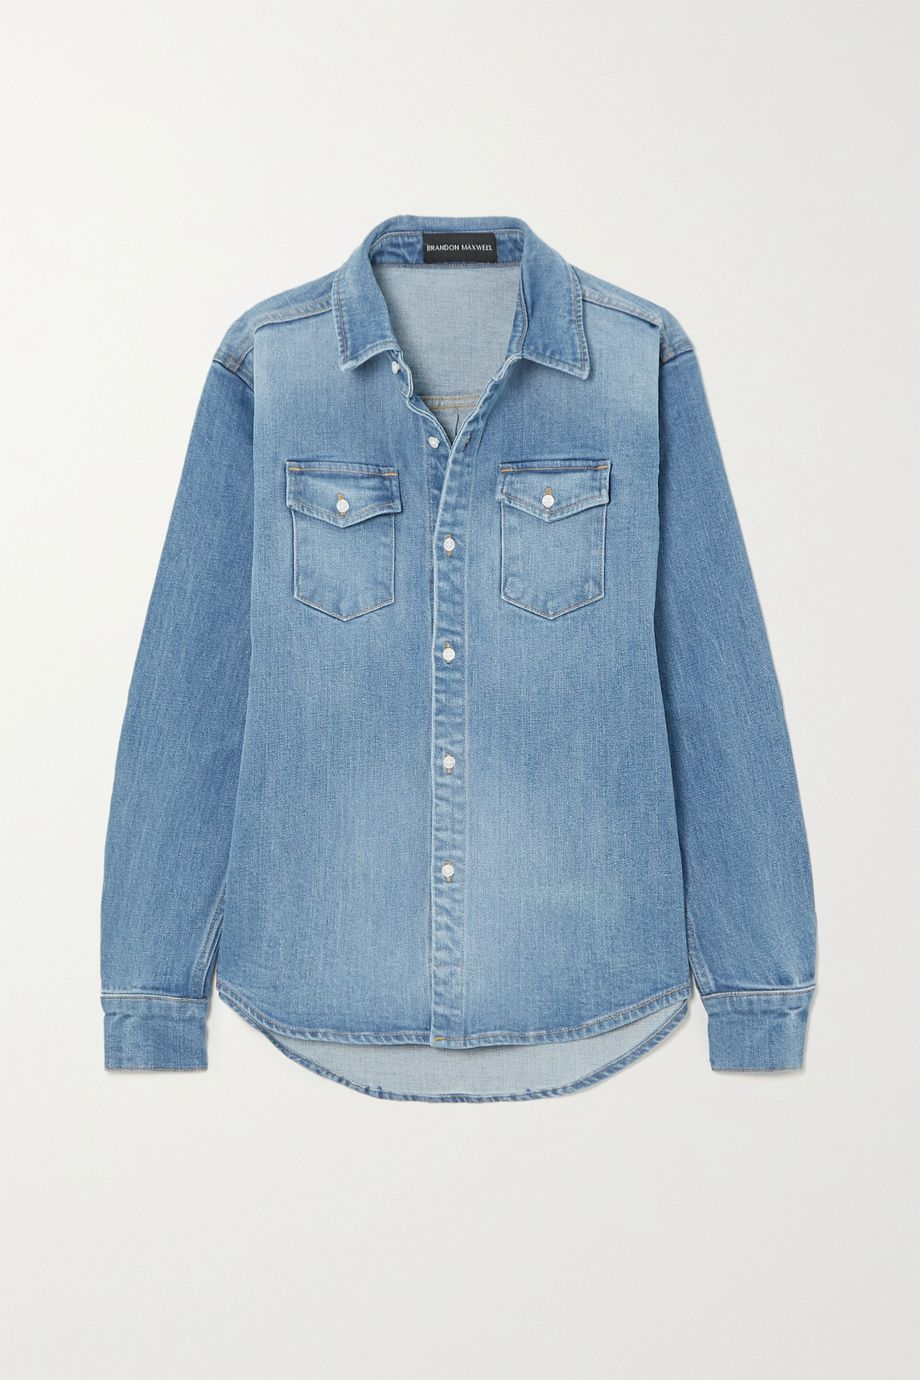 Brandon Maxwell Denim shirt